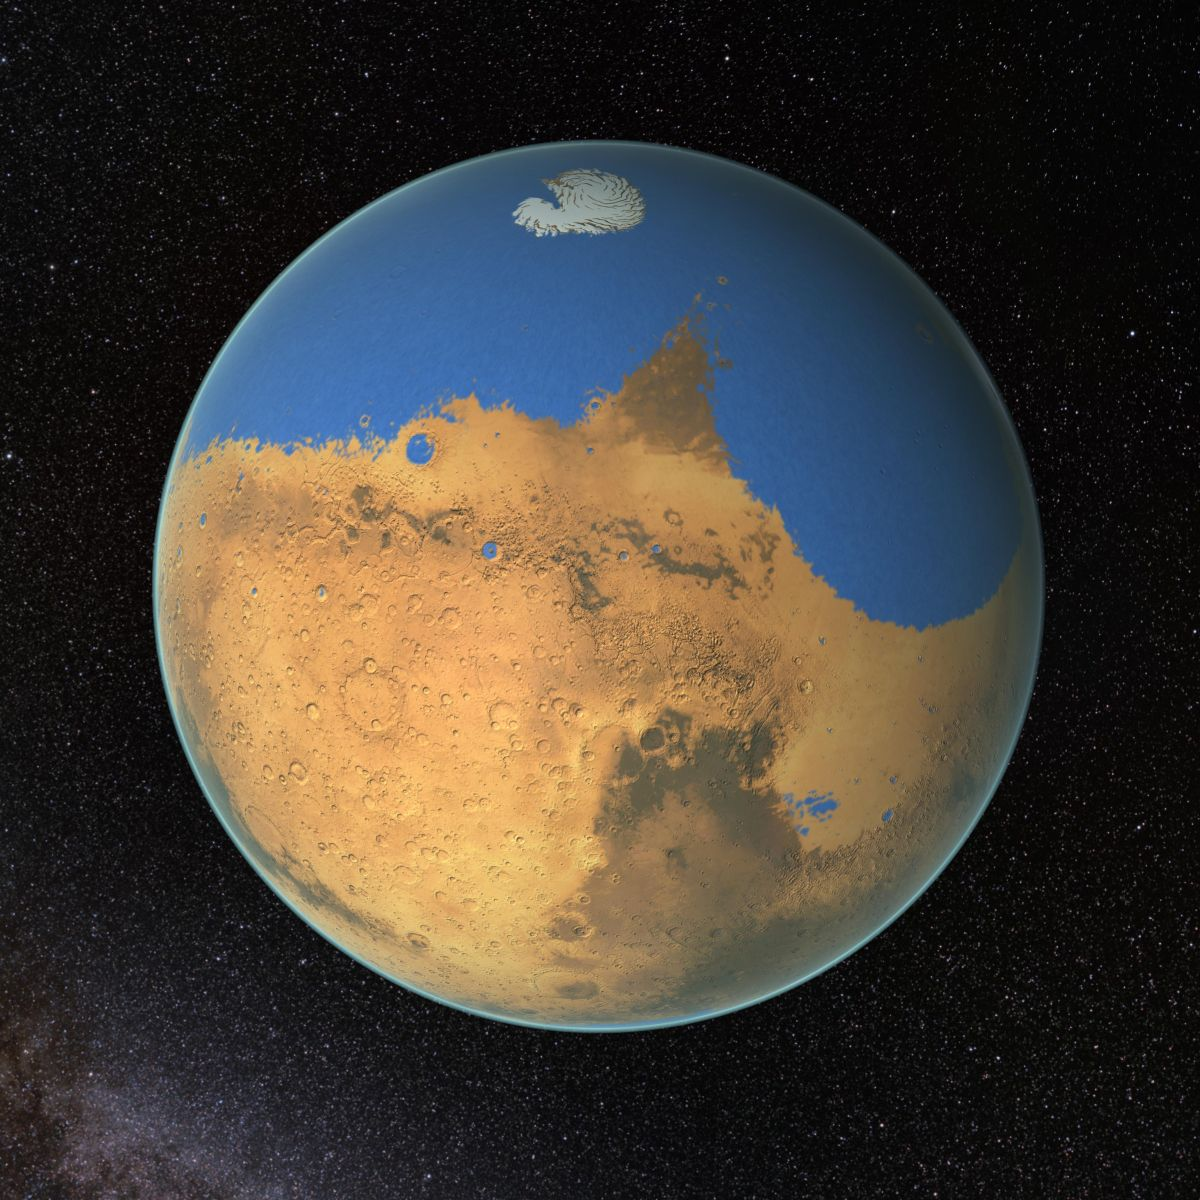 Rare Meteorites May Have Formed During Large Impact on Wet Mars